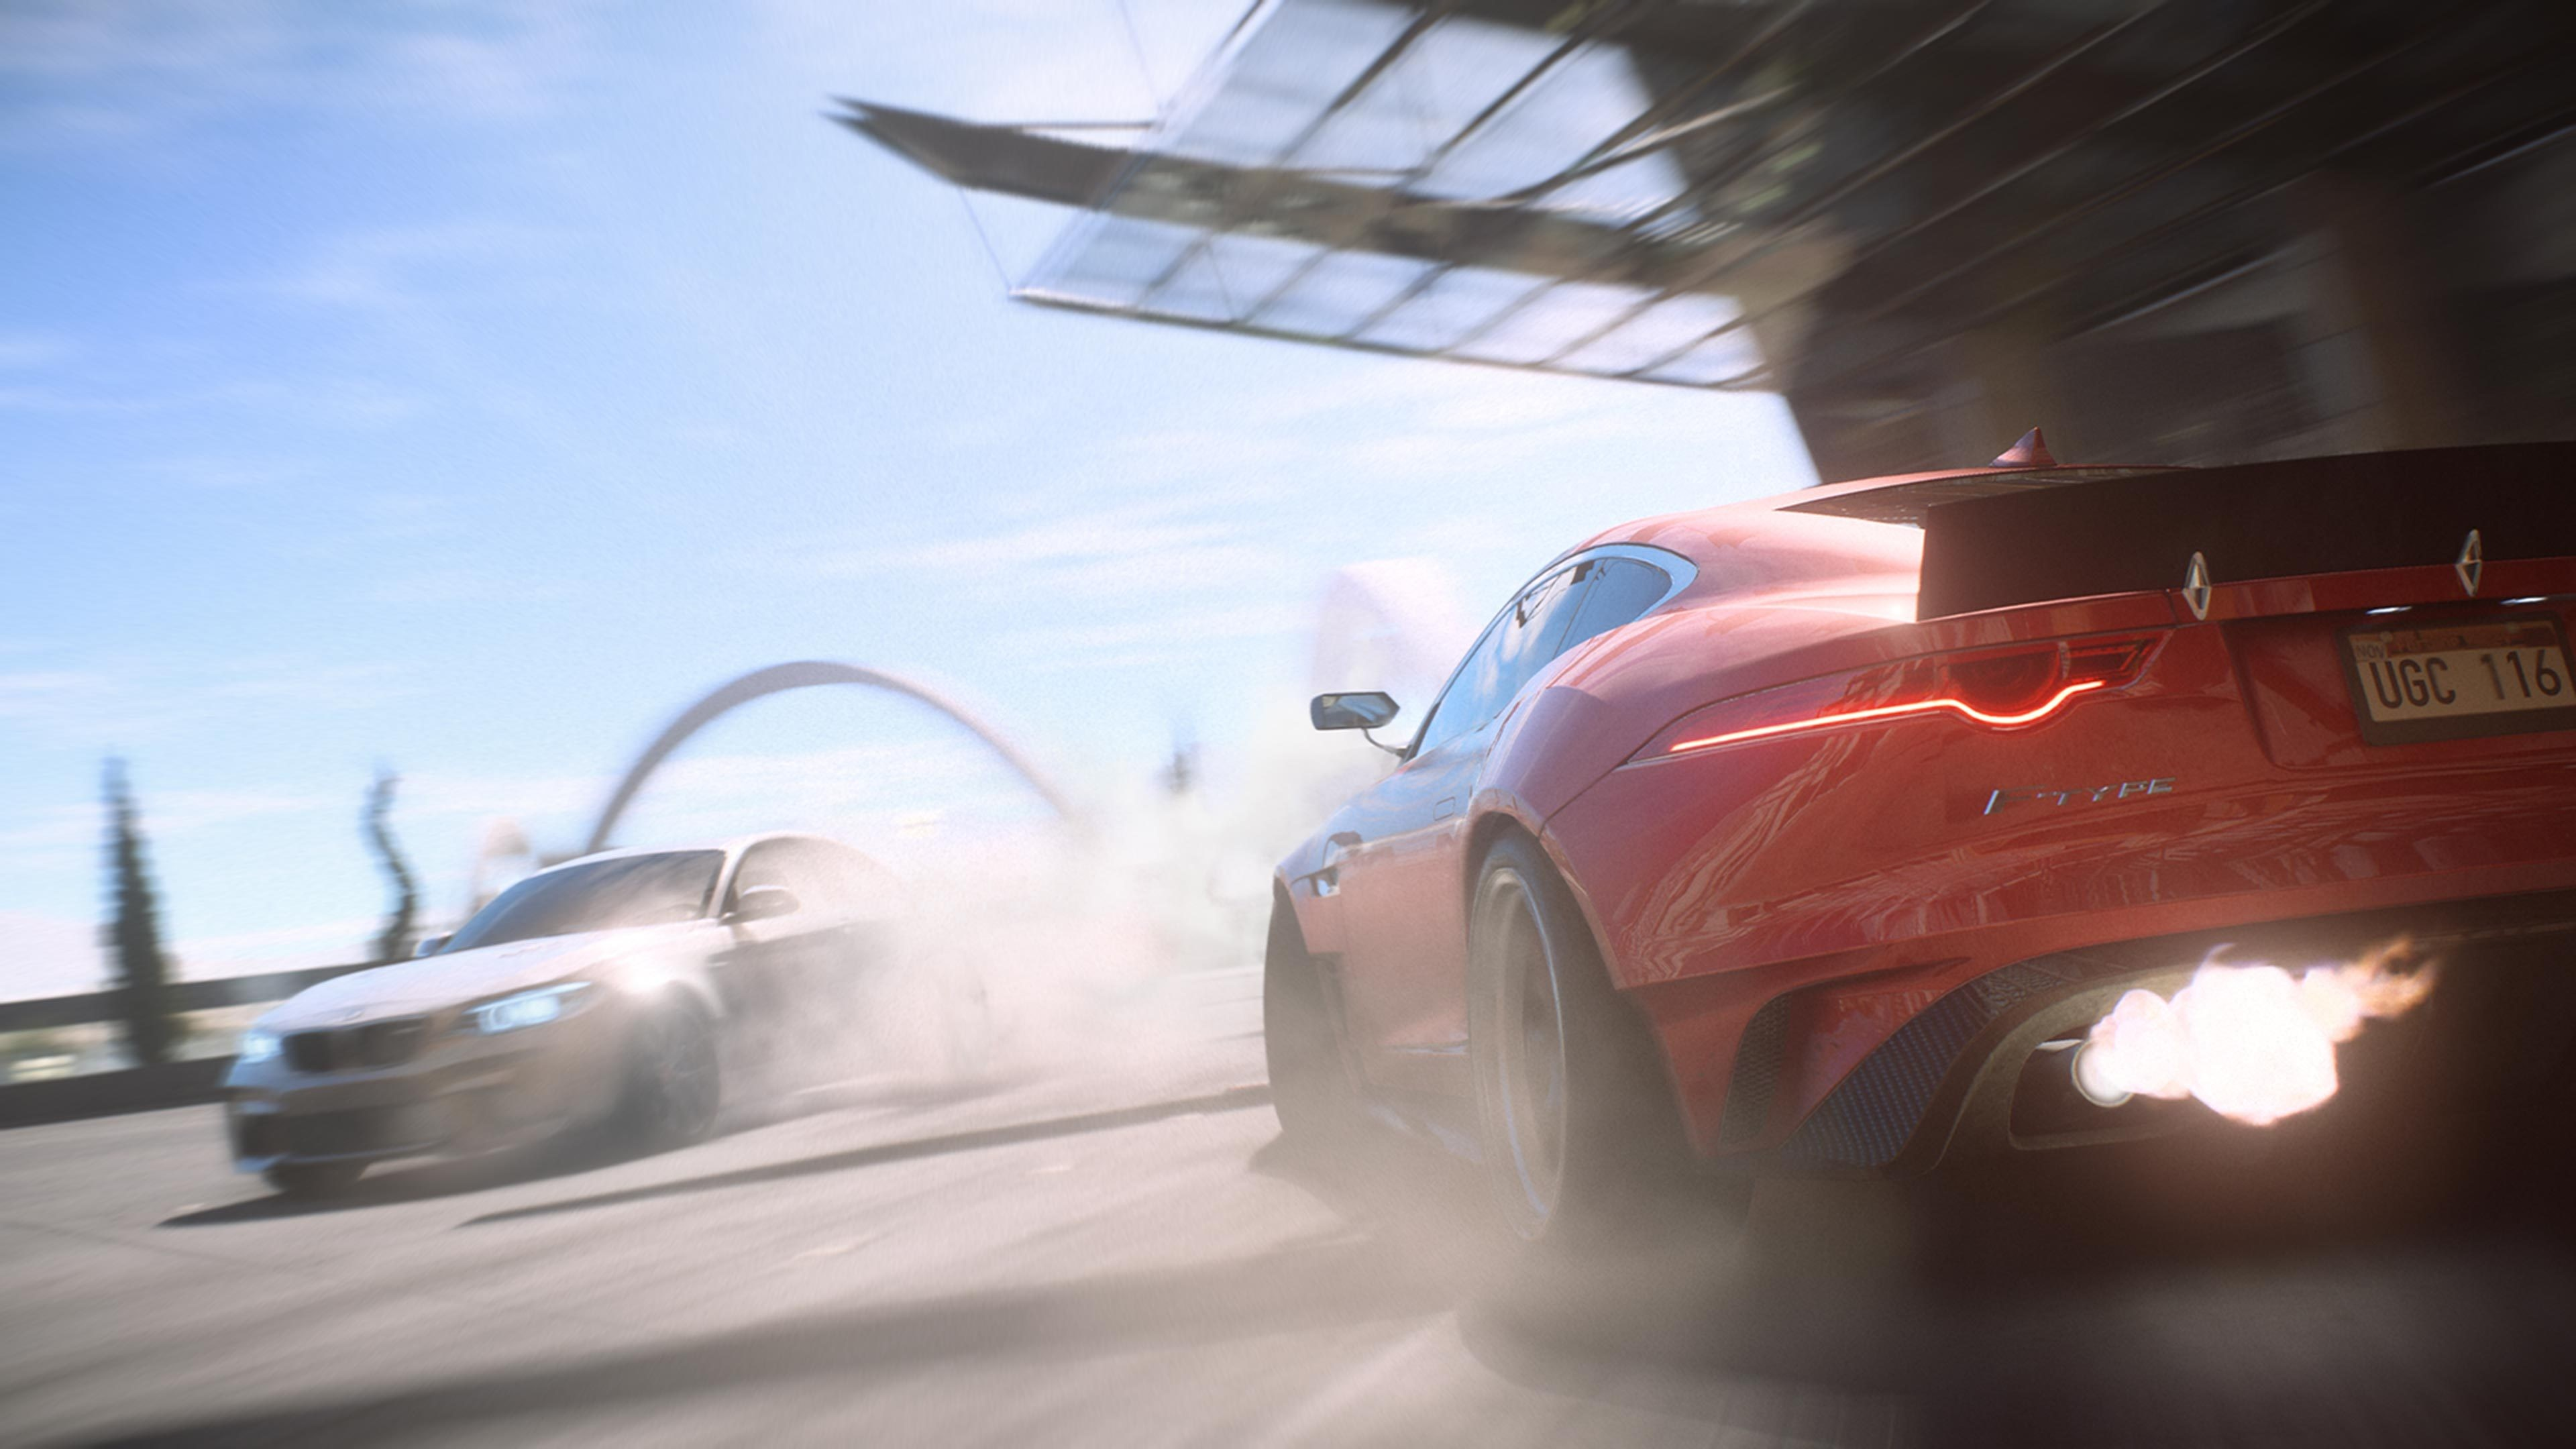 Need for Speed Payback 1 - دانلود بازی نید فور اسپید پلی بک Need for Speed Payback